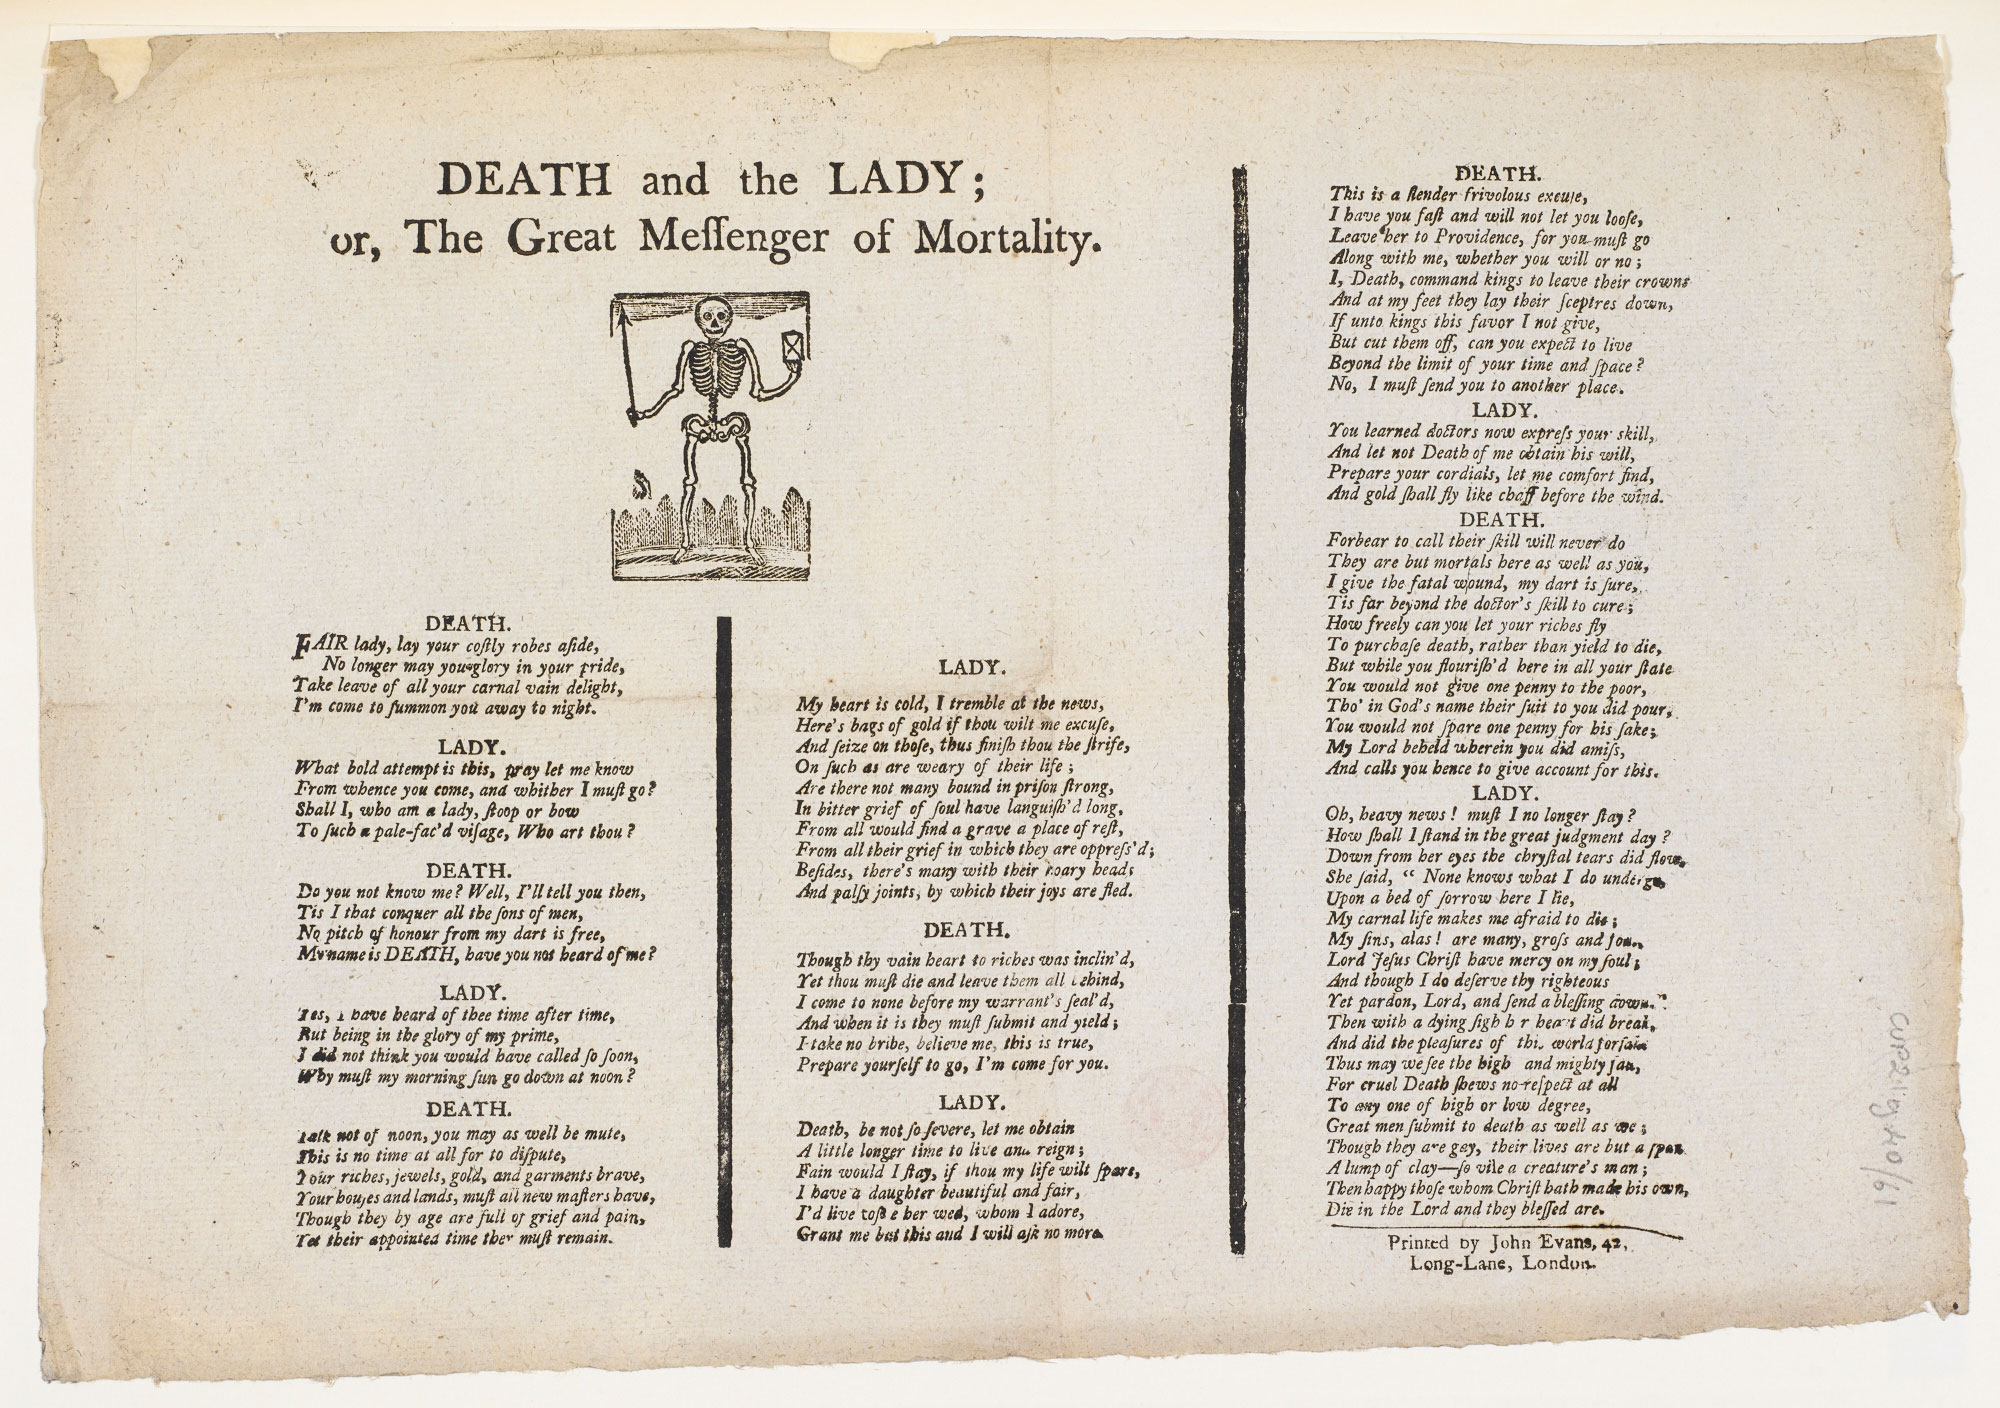 Death and the lady, a broadside